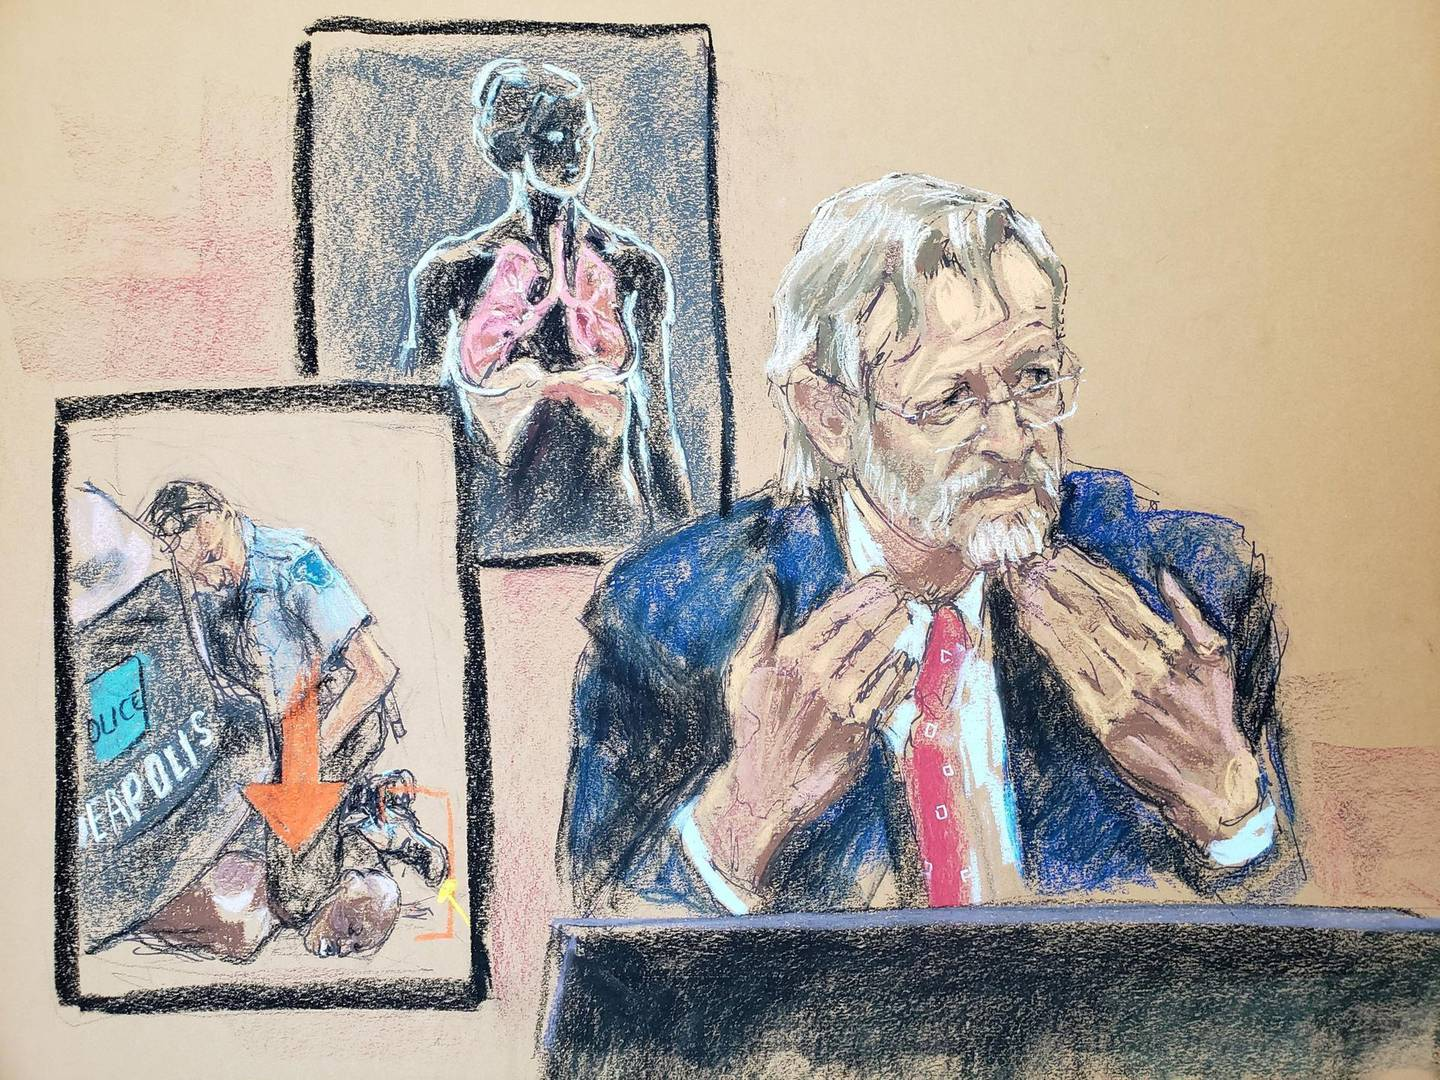 Pulmonologist Dr. Martin Tobin testifies on the ninth day of the trial of former Minneapolis police officer Derek Chauvin for second-degree murder, third-degree murder and second-degree manslaughter in the death of George Floyd in Minneapolis, Minnesota, U.S. April 8, 2021 in this courtroom sketch. REUTERS/Jane Rosenberg